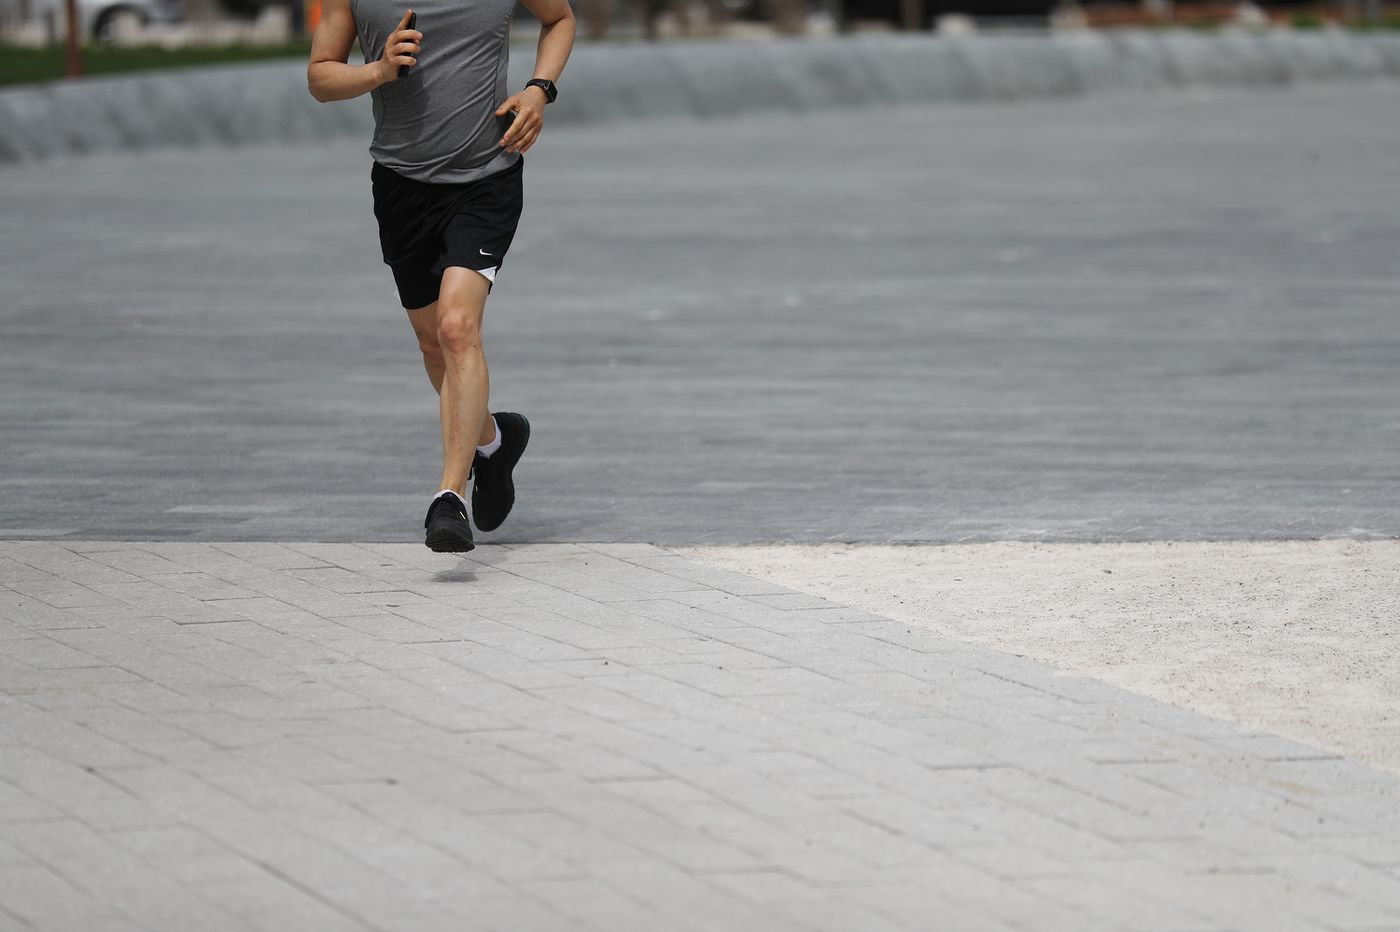 The best way to get someone to exercise? Pay them, says new Penn study